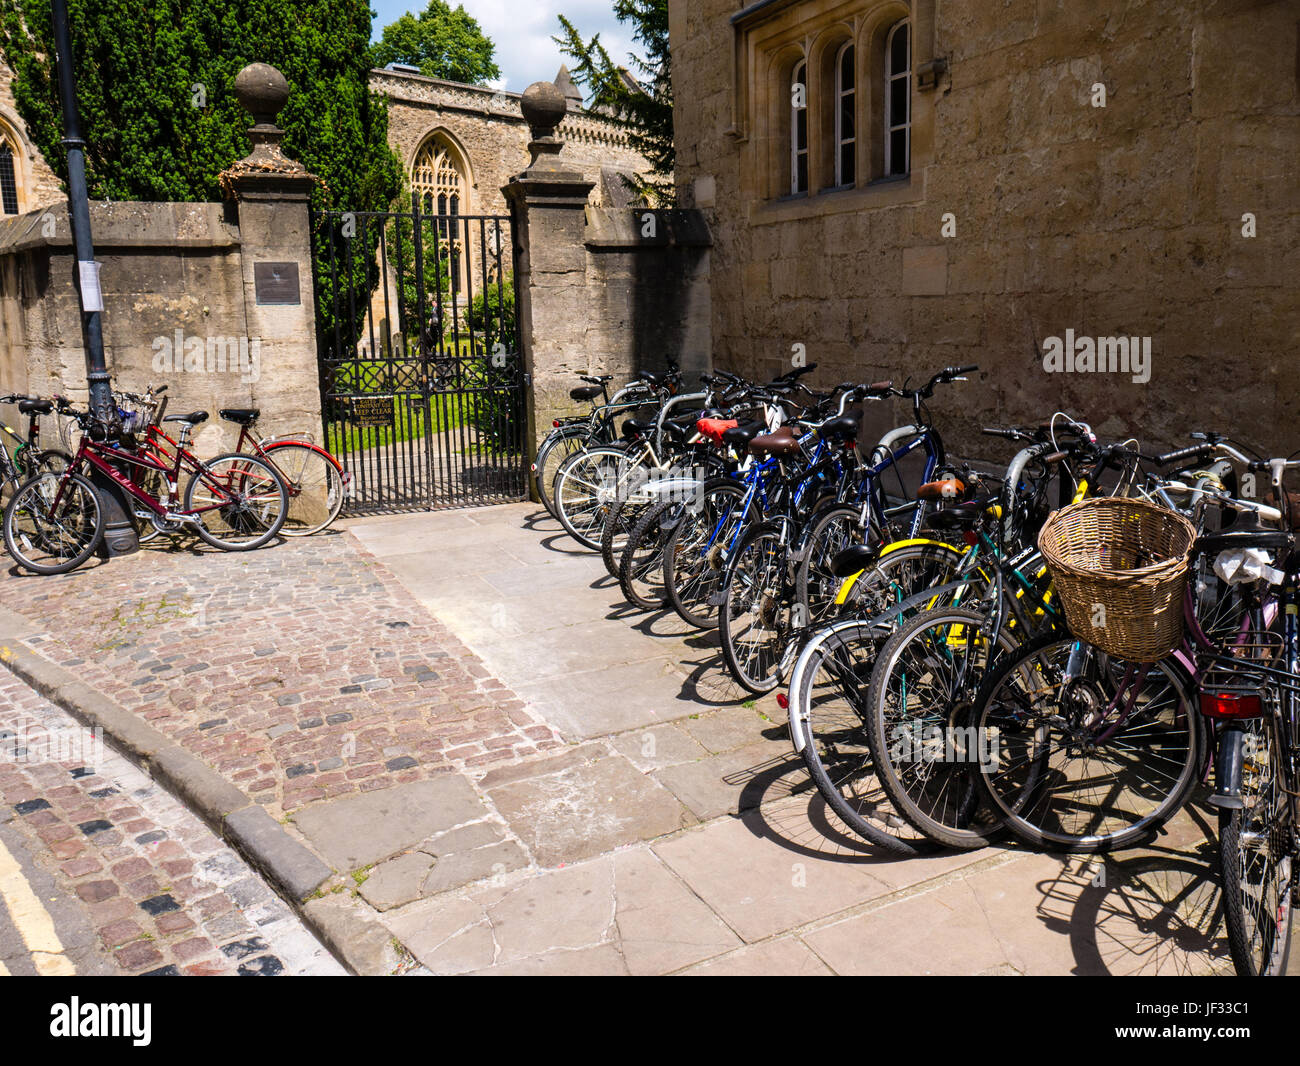 Bicycles , St Edmunds Hall, Oxford, Oxfordshire, England - Stock Image